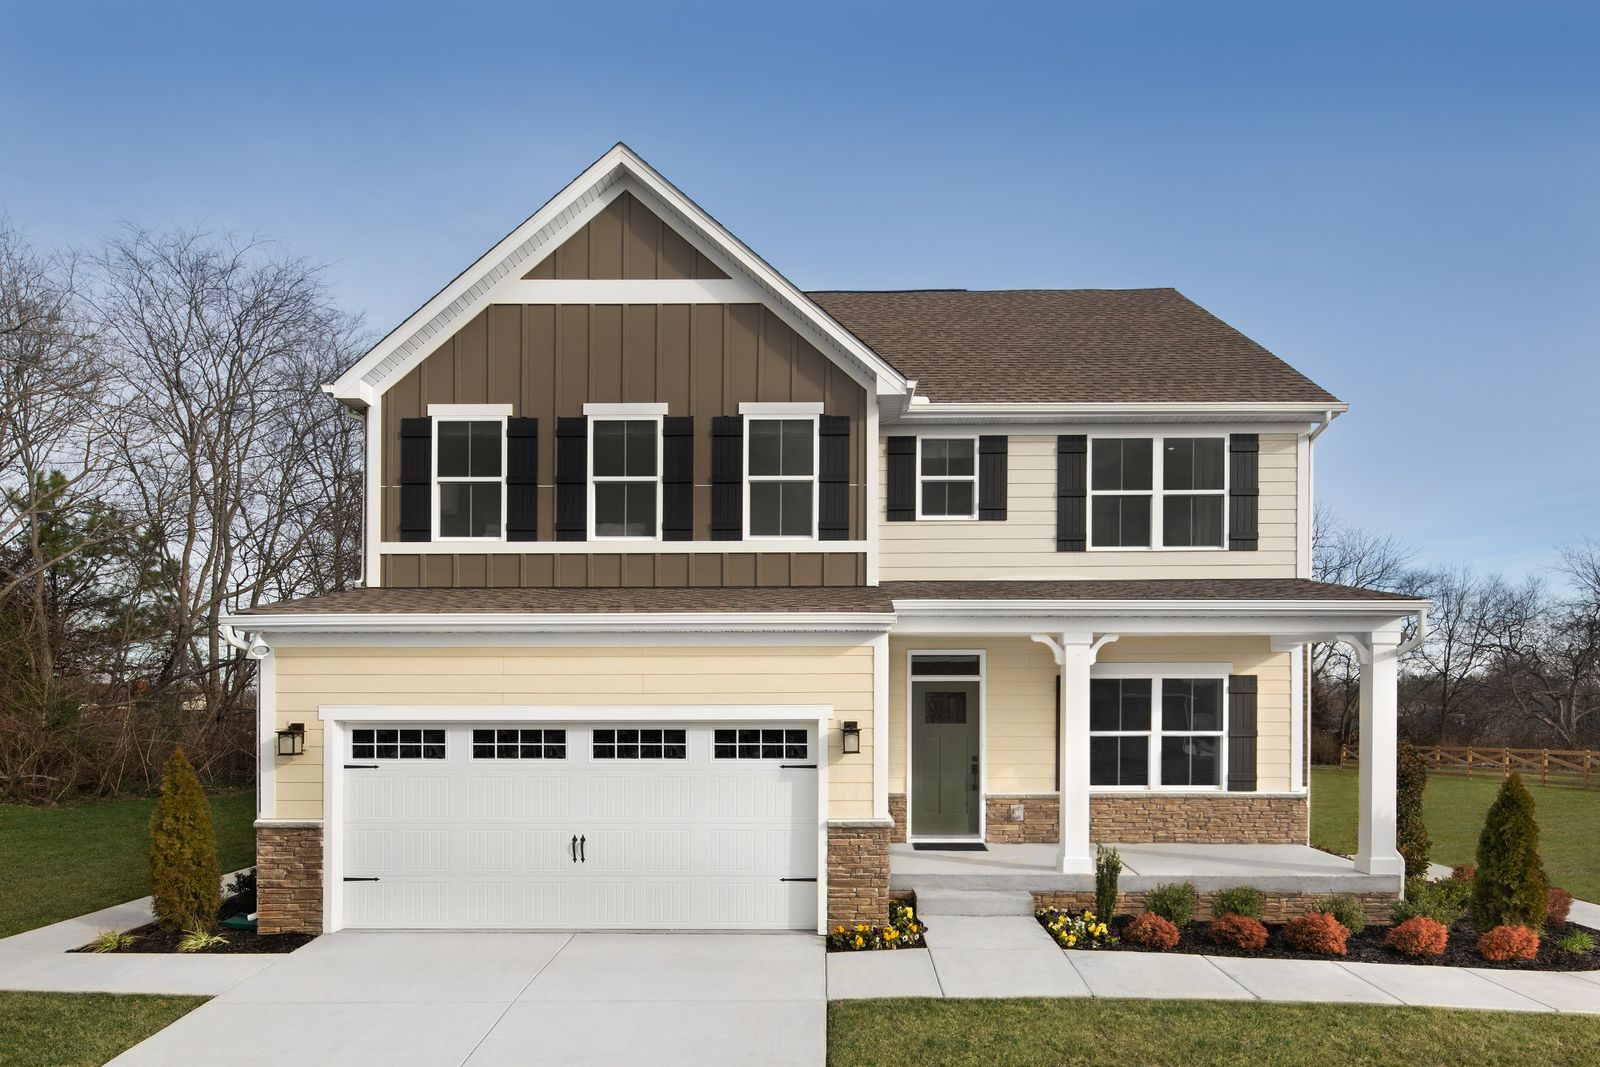 welcome to blackburn, single-family homes from the upper $600s!:We are open and taking extra precautions for your safety.Click here to schedule an in-person visit, or meet with us virtually on the app of your choice.